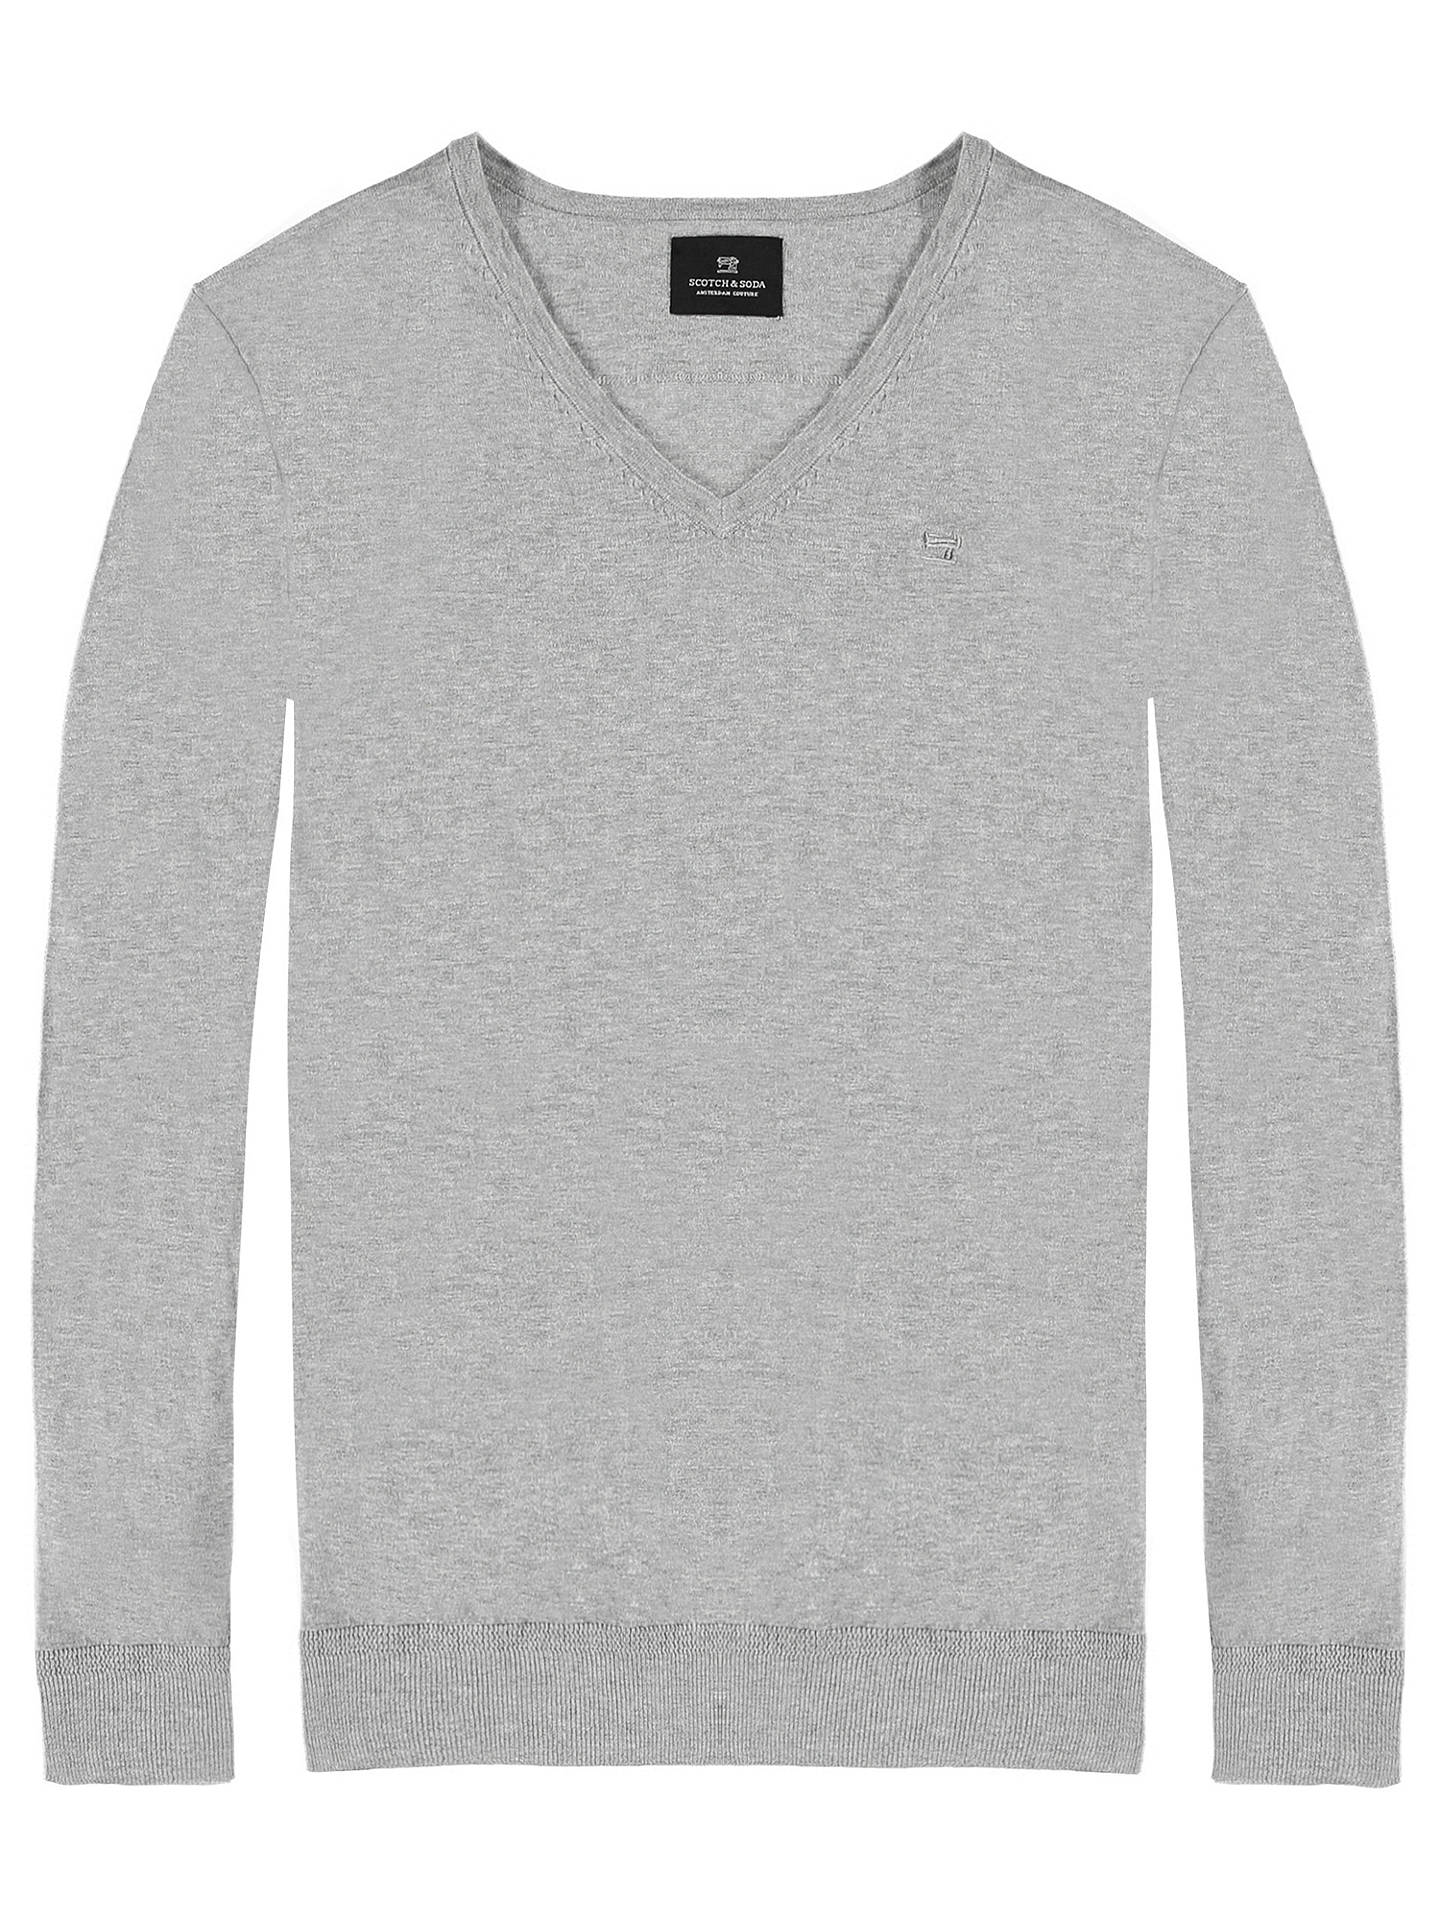 BuyScotch & Soda Classic V-Neck Jumper, Grey Melange, S Online at johnlewis.com